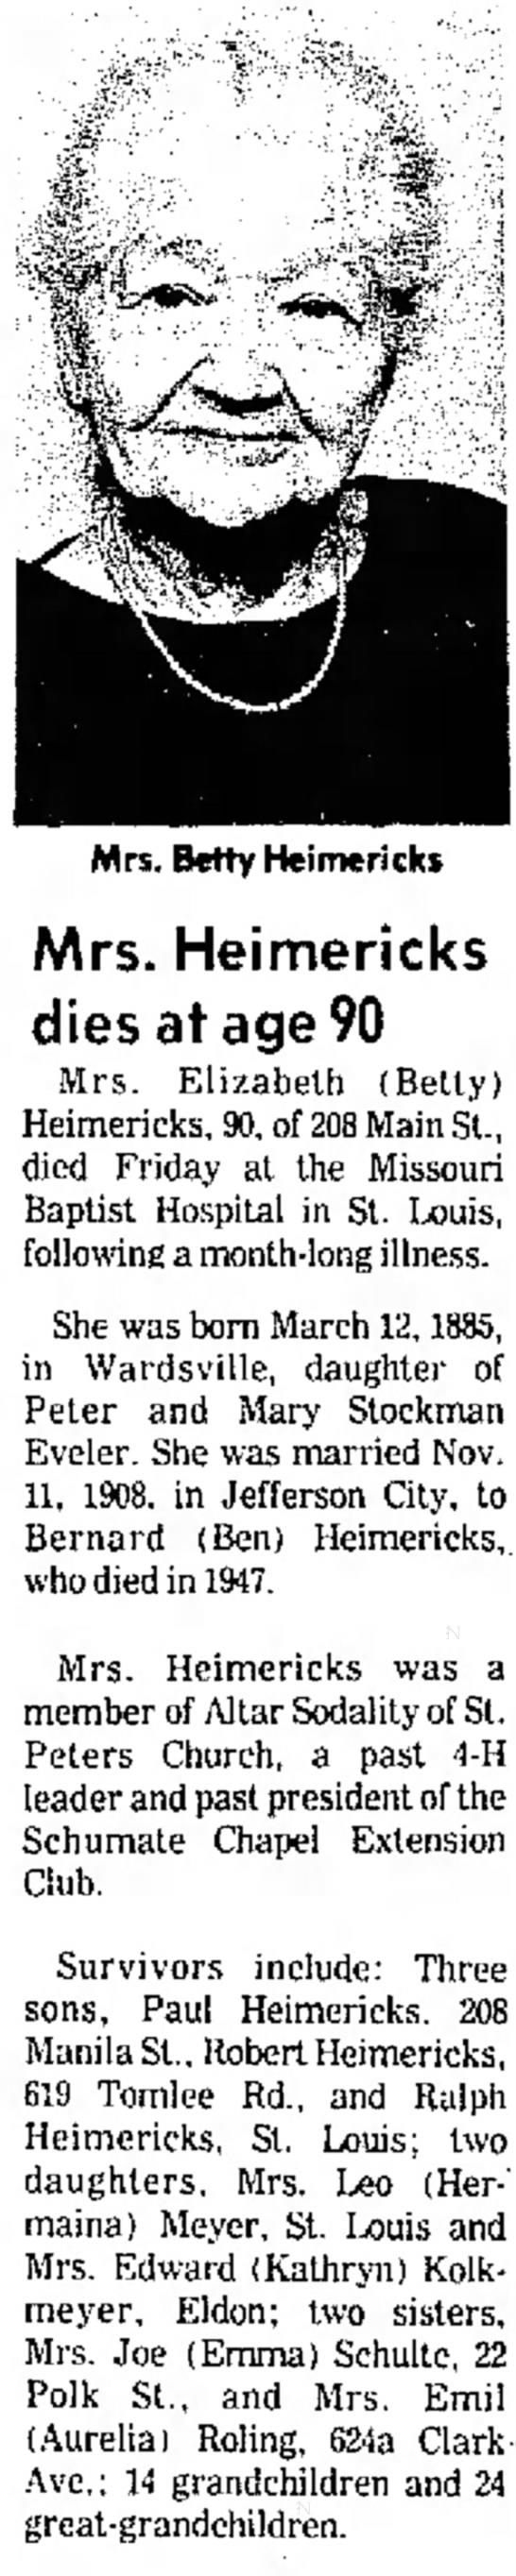 Betty Heimericks Obituary. Daughter of Peter and Mary Stockman Eveler - 16, and vie and p.m. 16, to Mrs. two Mrs....